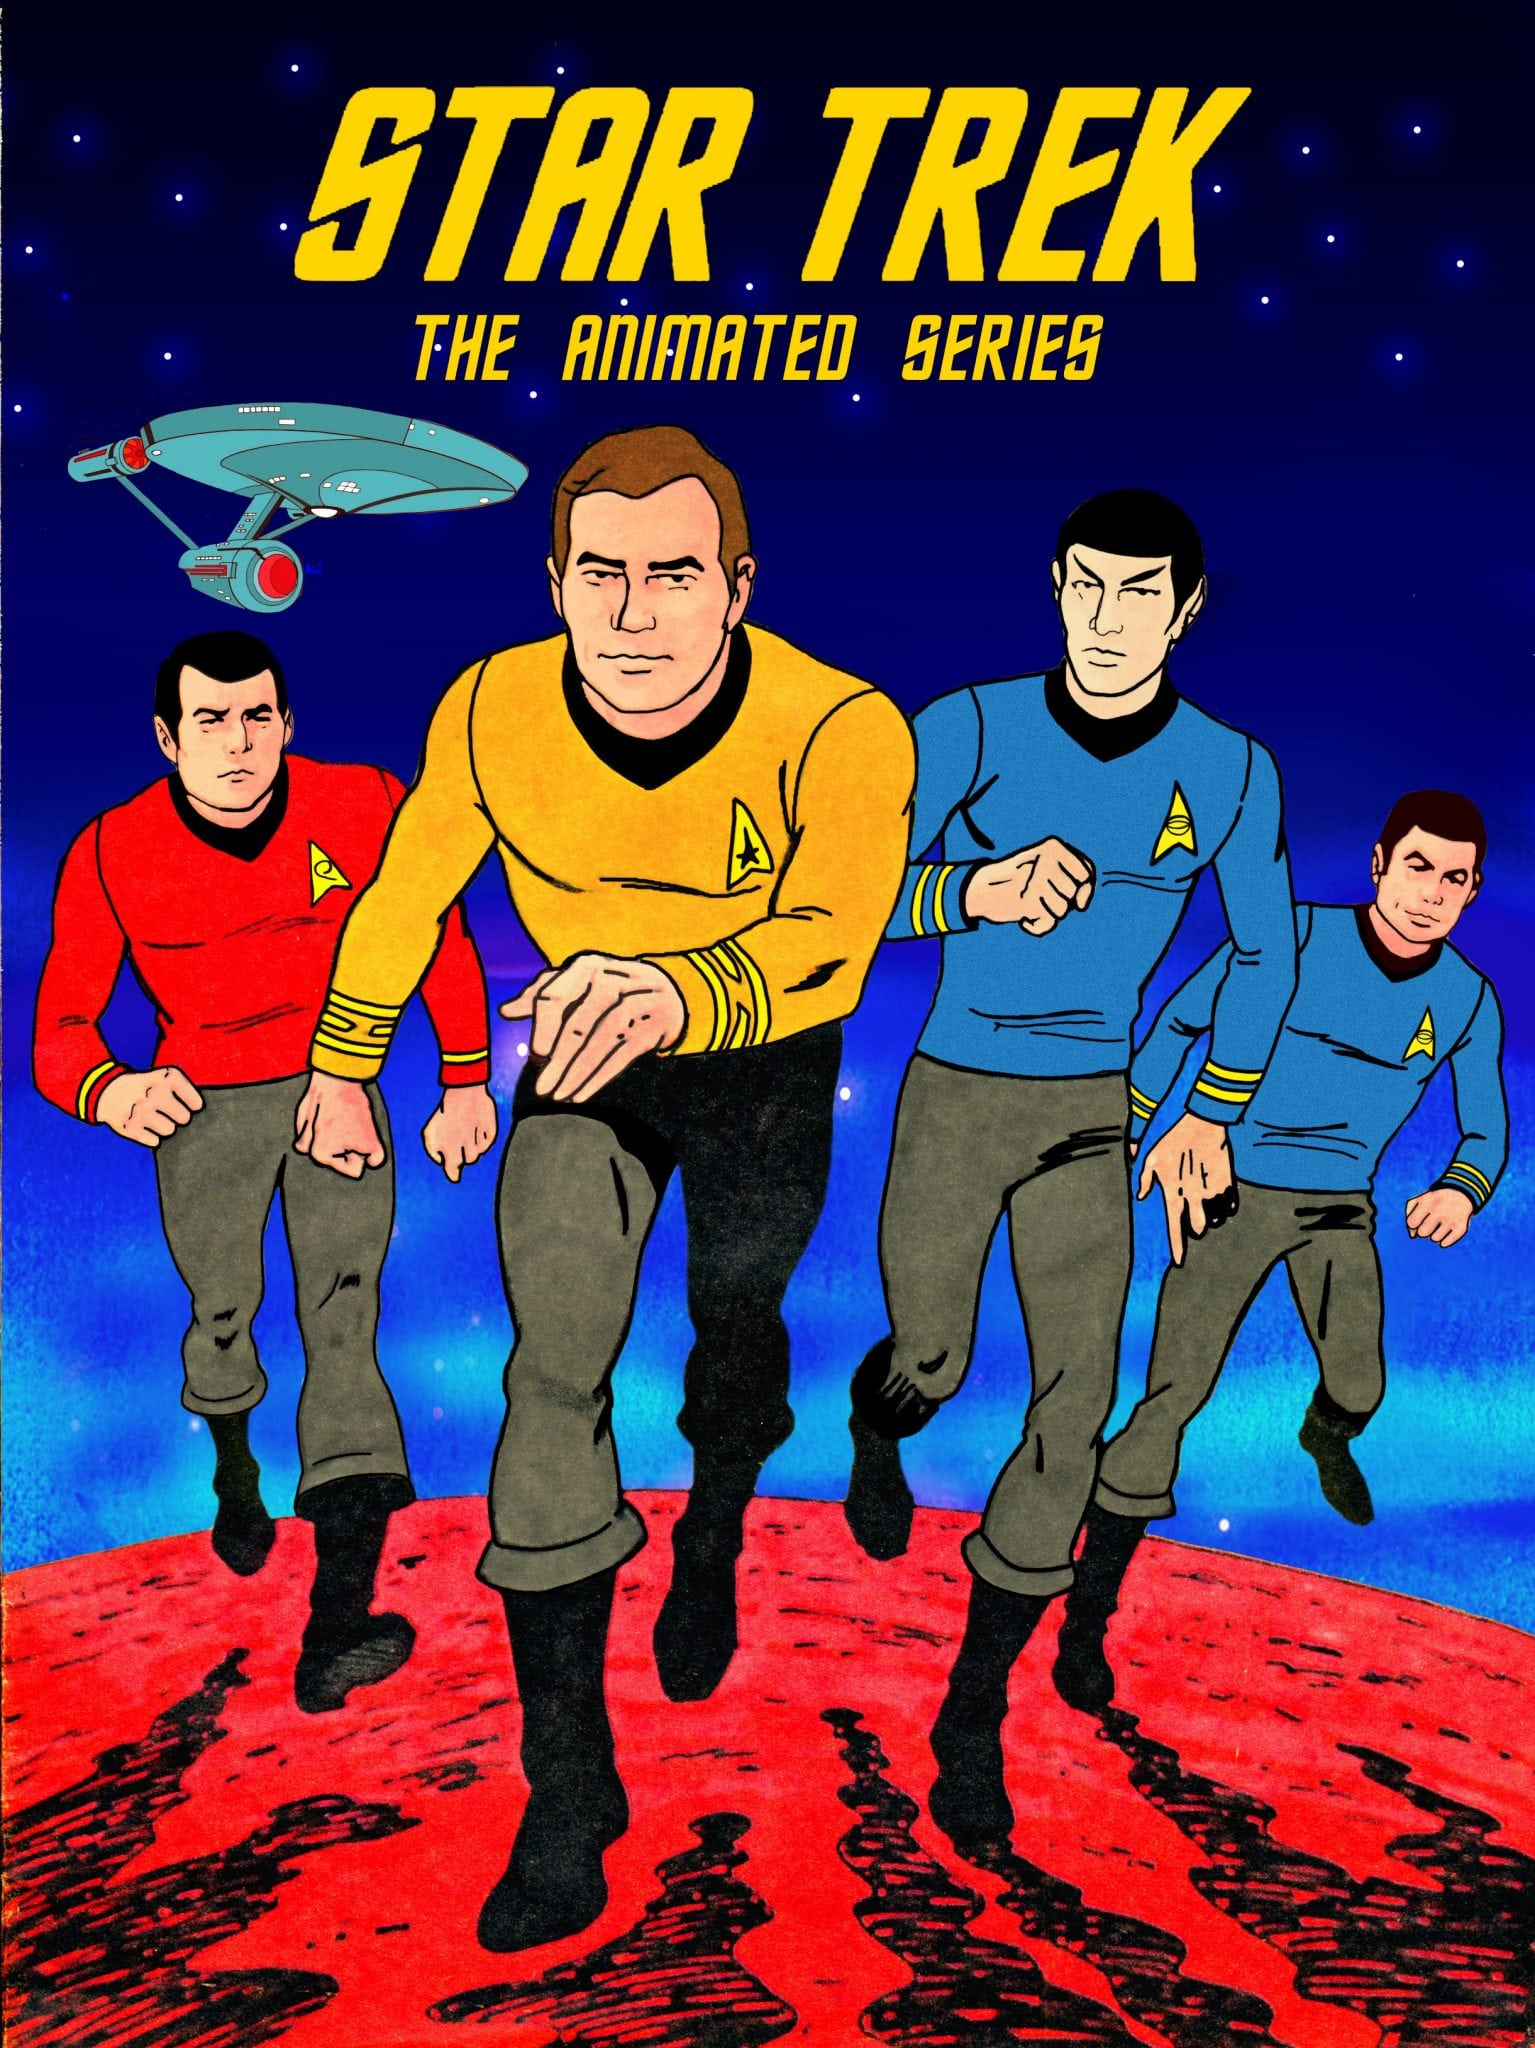 Star Trek: The Animated Series Screening/Panel Discussion